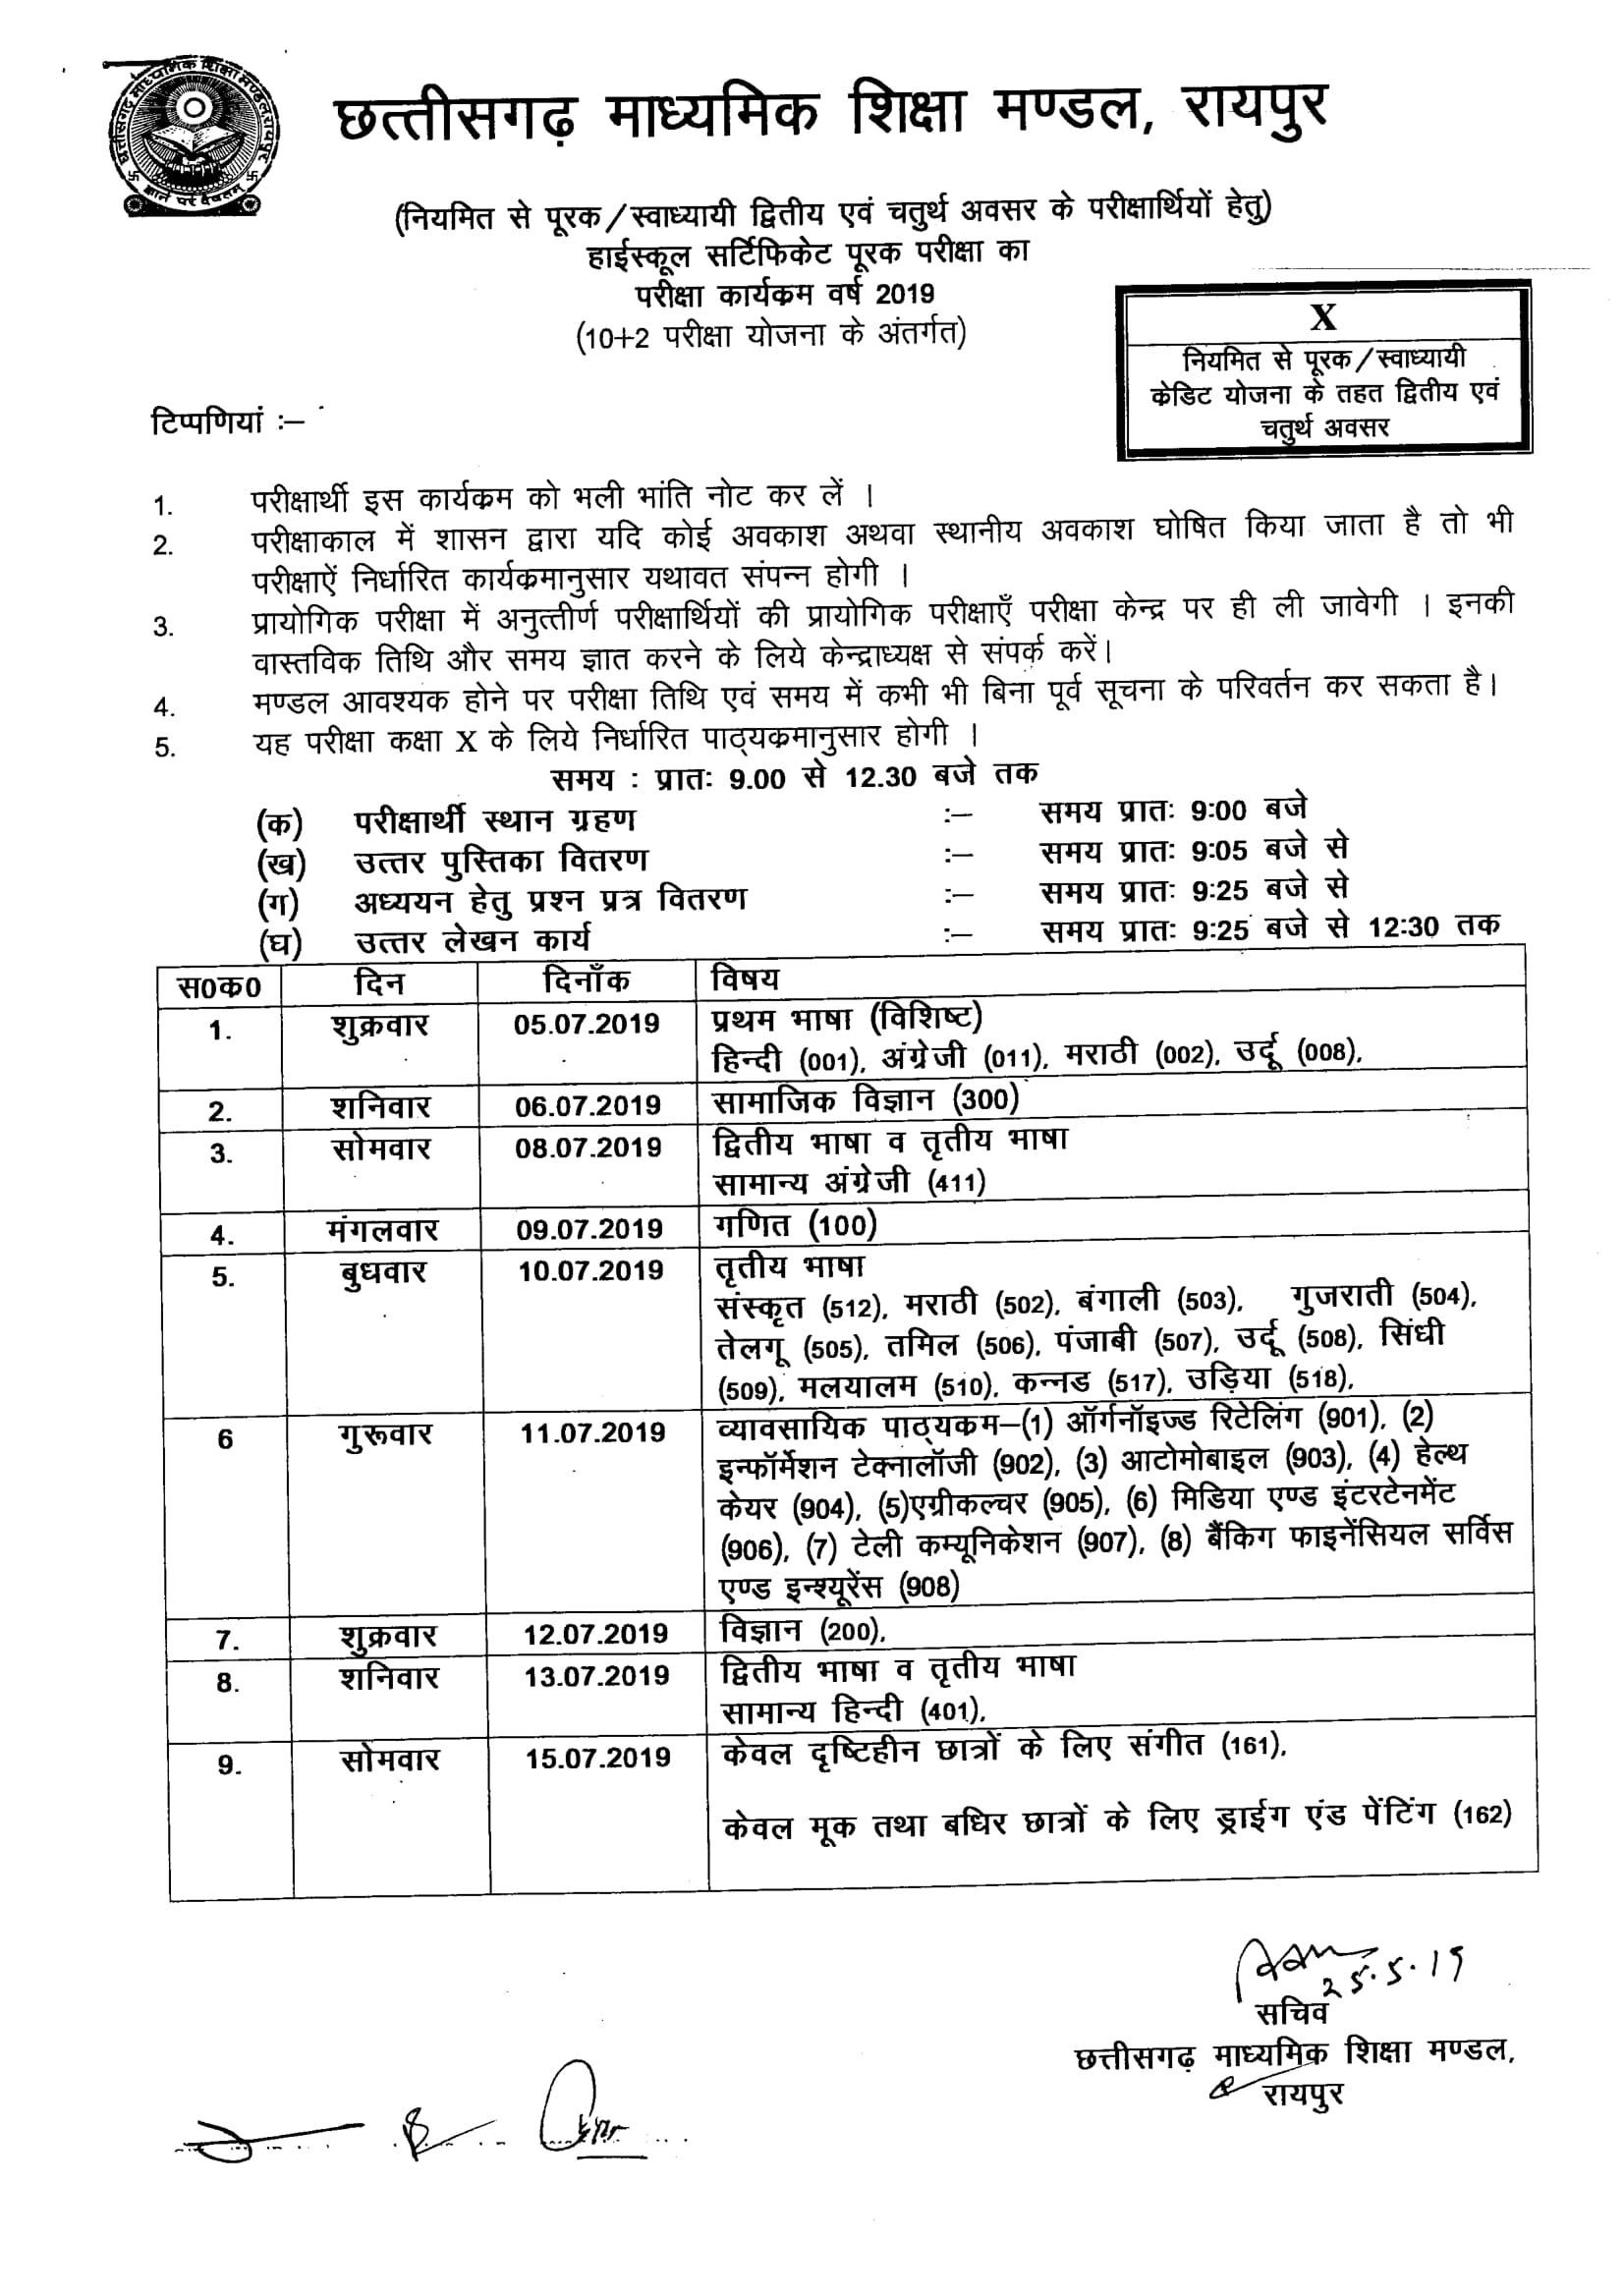 CGBSE 12th Time Table PDF 2019 Released (Supplementary